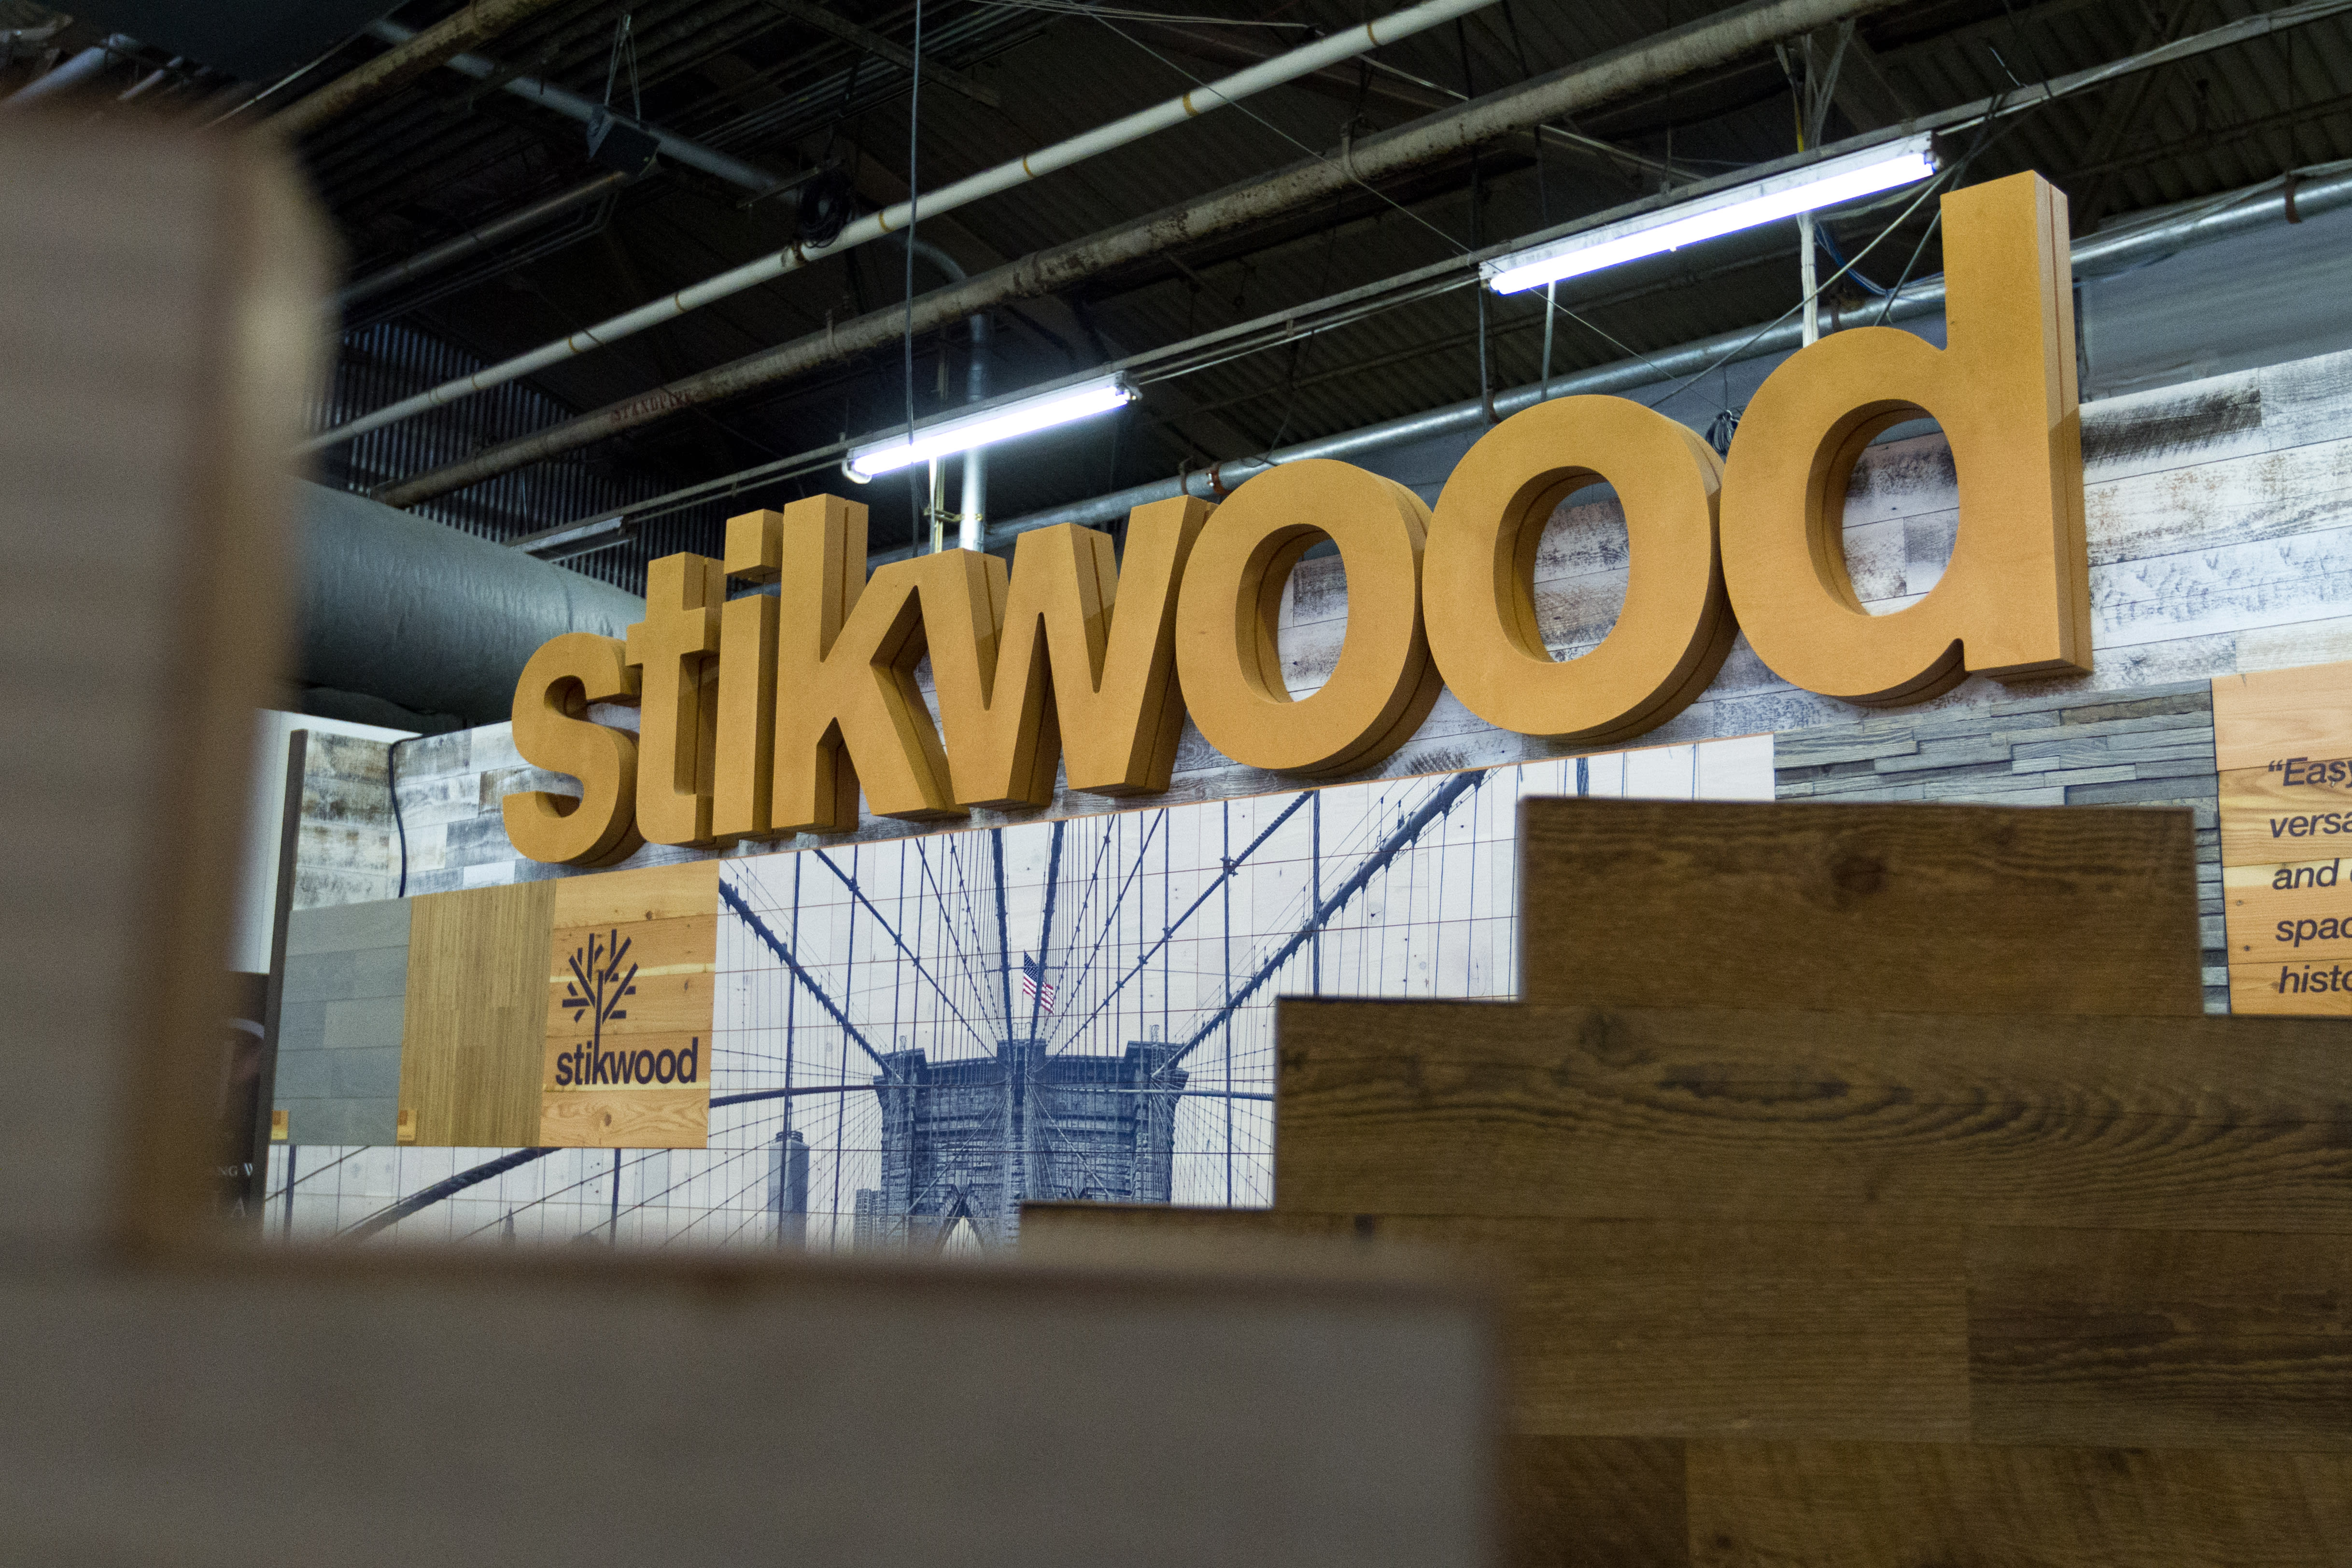 Stikwood NYC tradeshow booth showing assembles brooklyn bridge peel and stick wood collage.